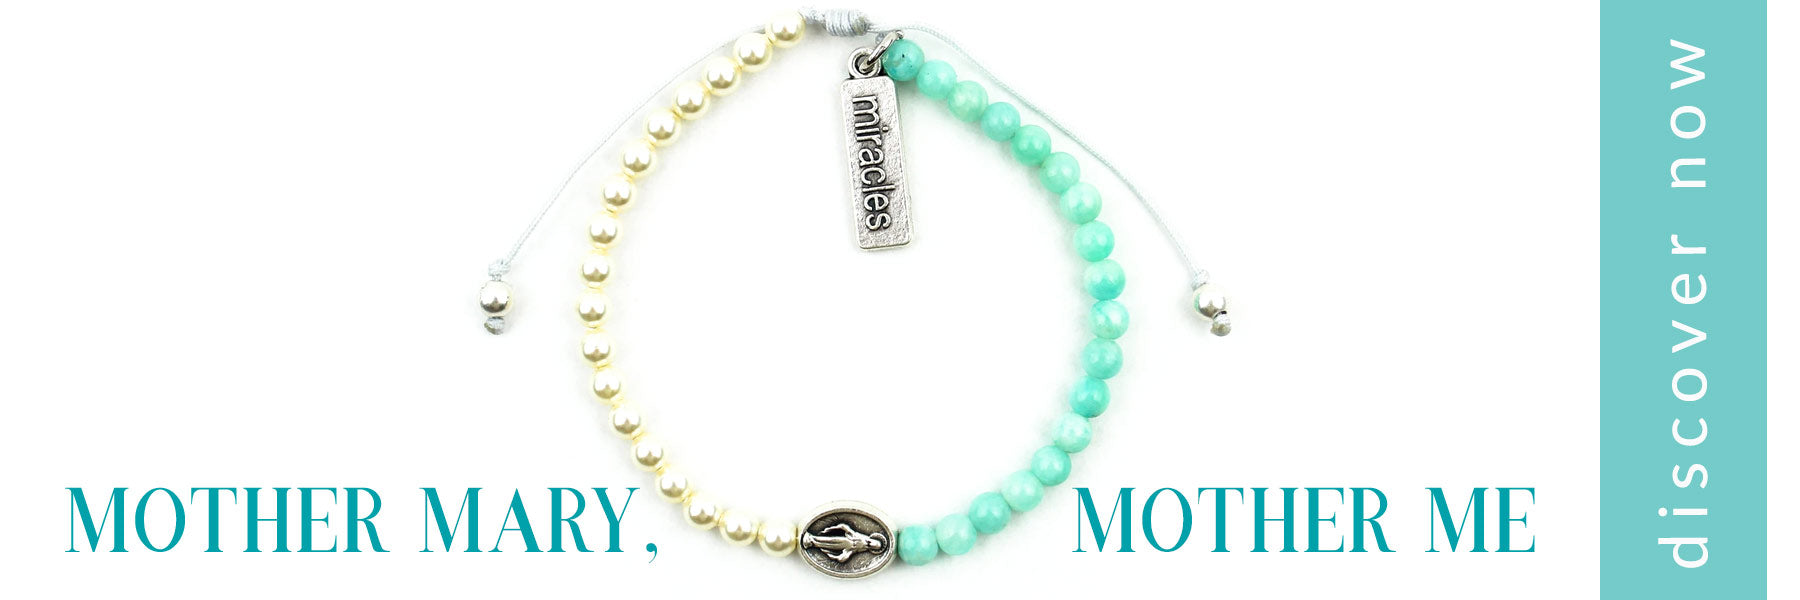 My Saint My Hero Mother Mary Mother Me Blessing Bracelet Pearls and Amazonite with the words discover now